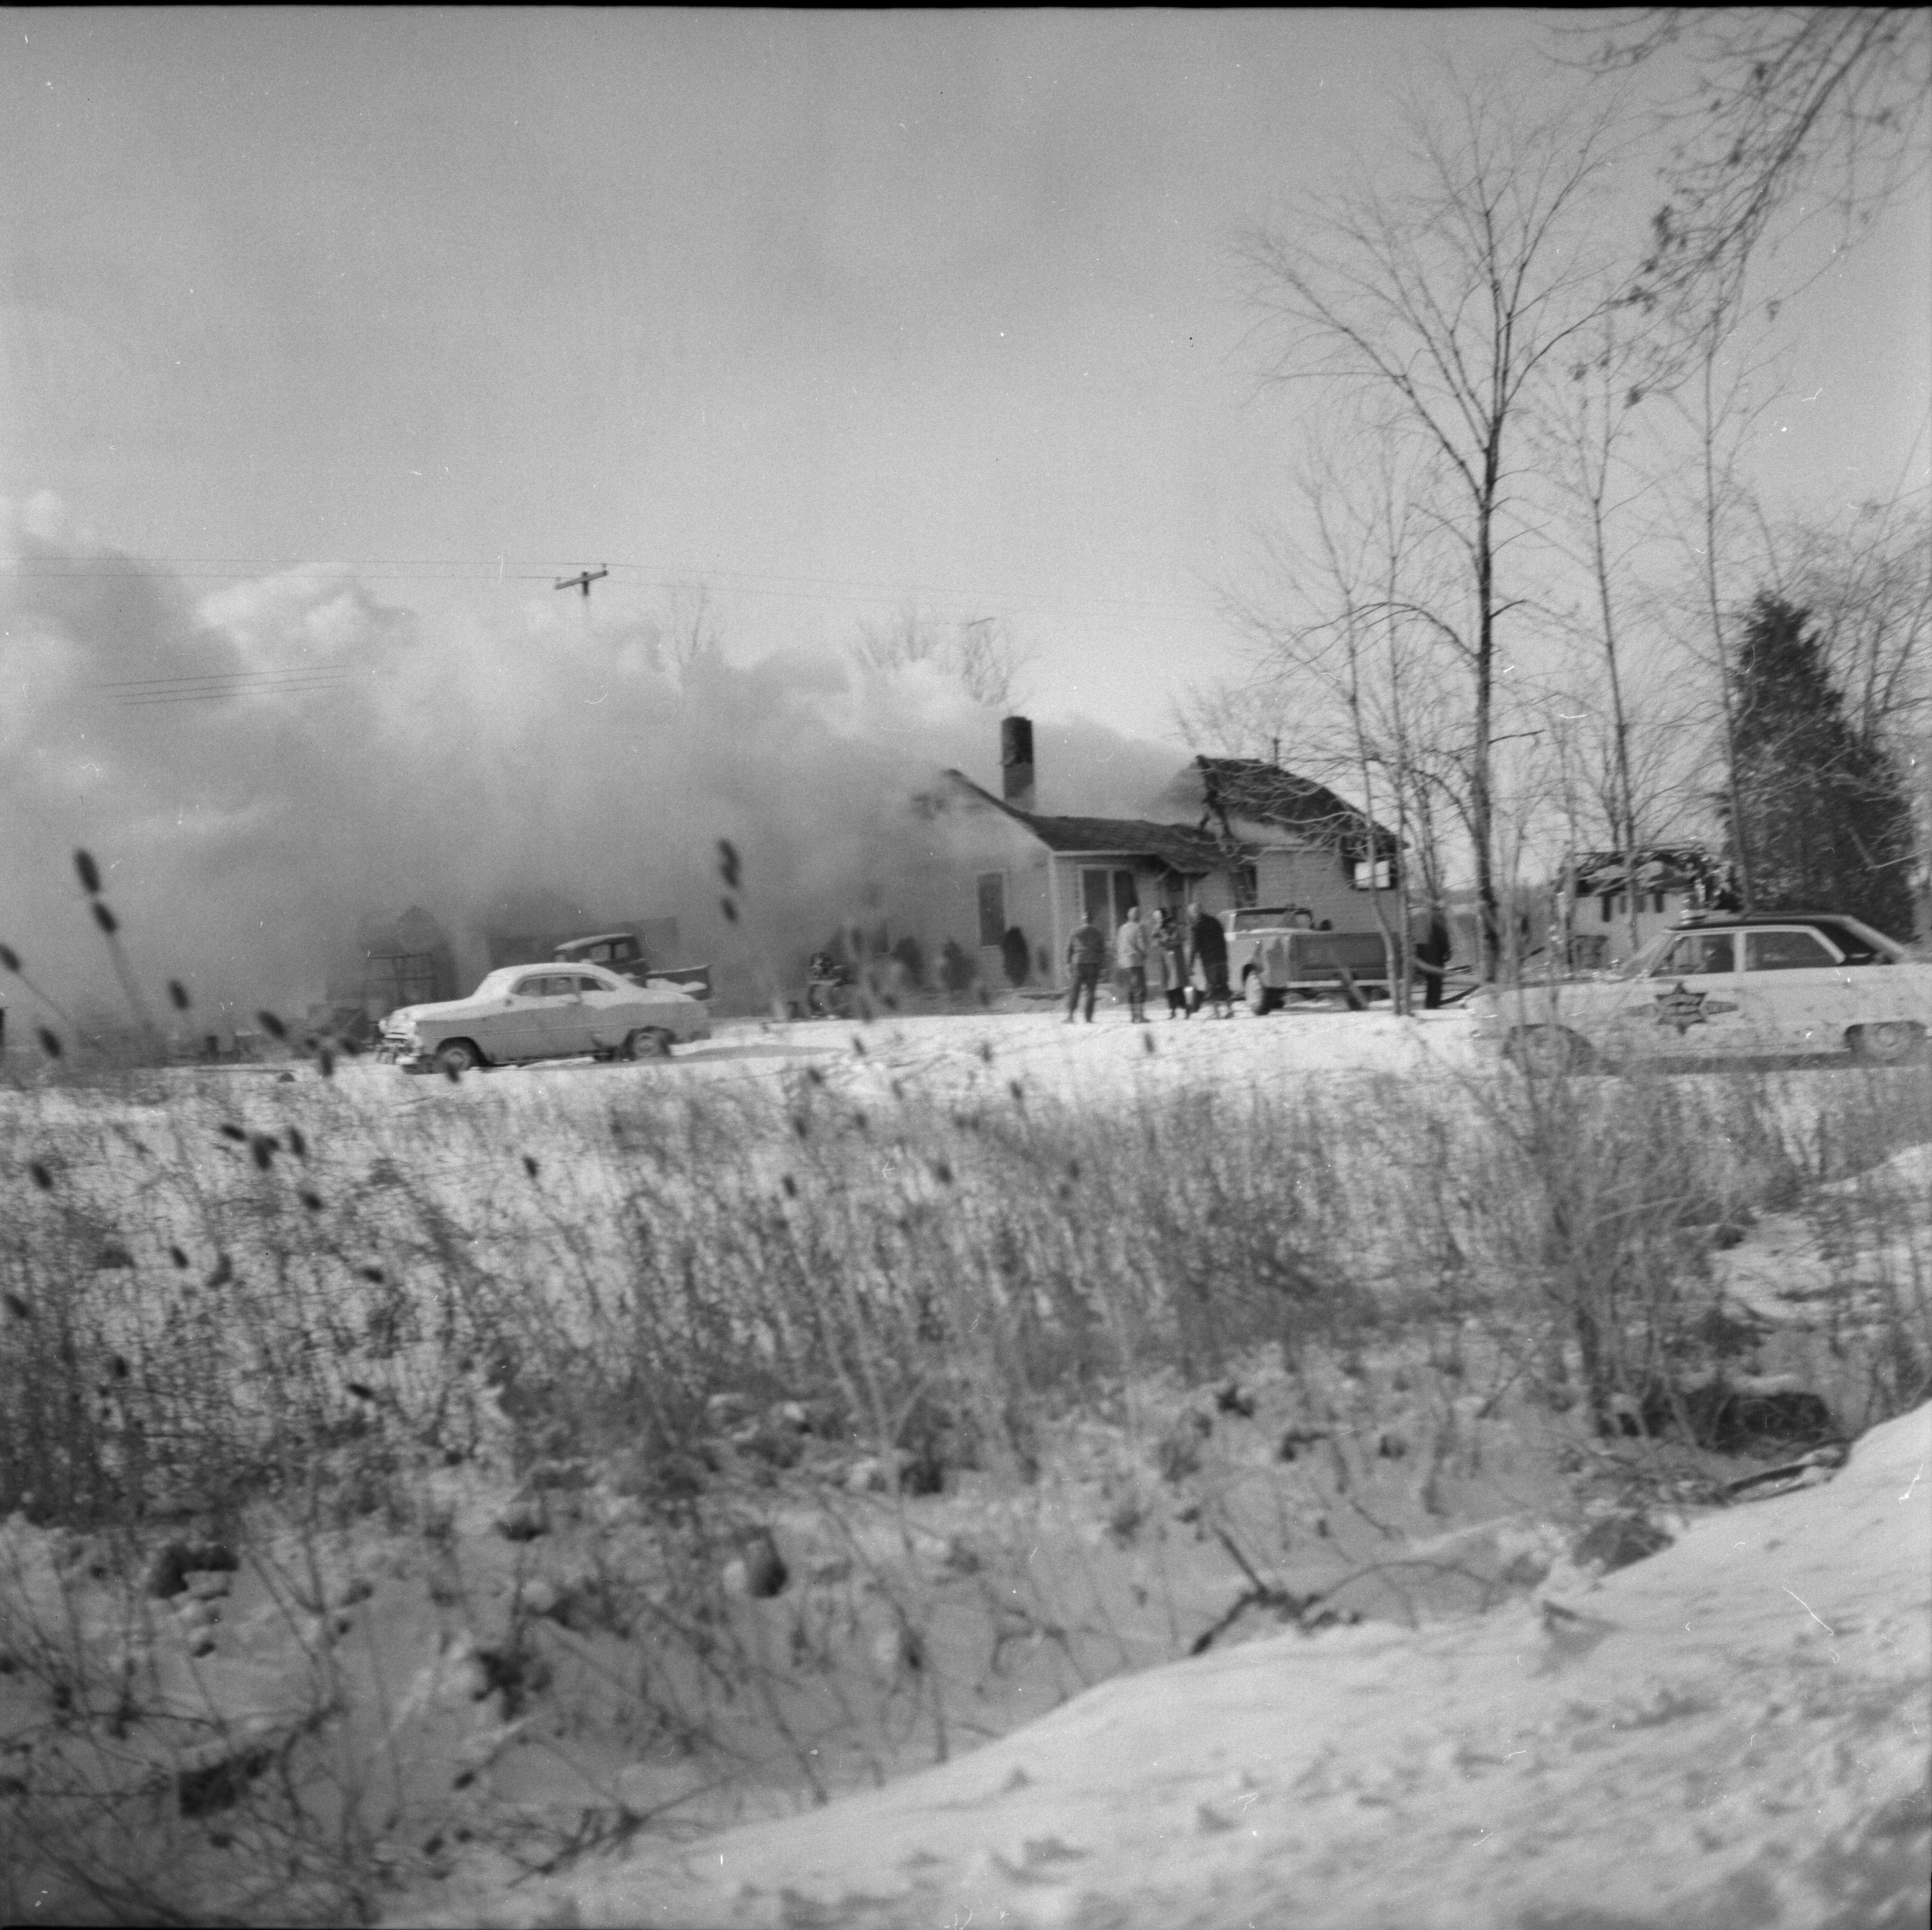 View of Fire at Home on Ellsworth Rd, February 1965 image